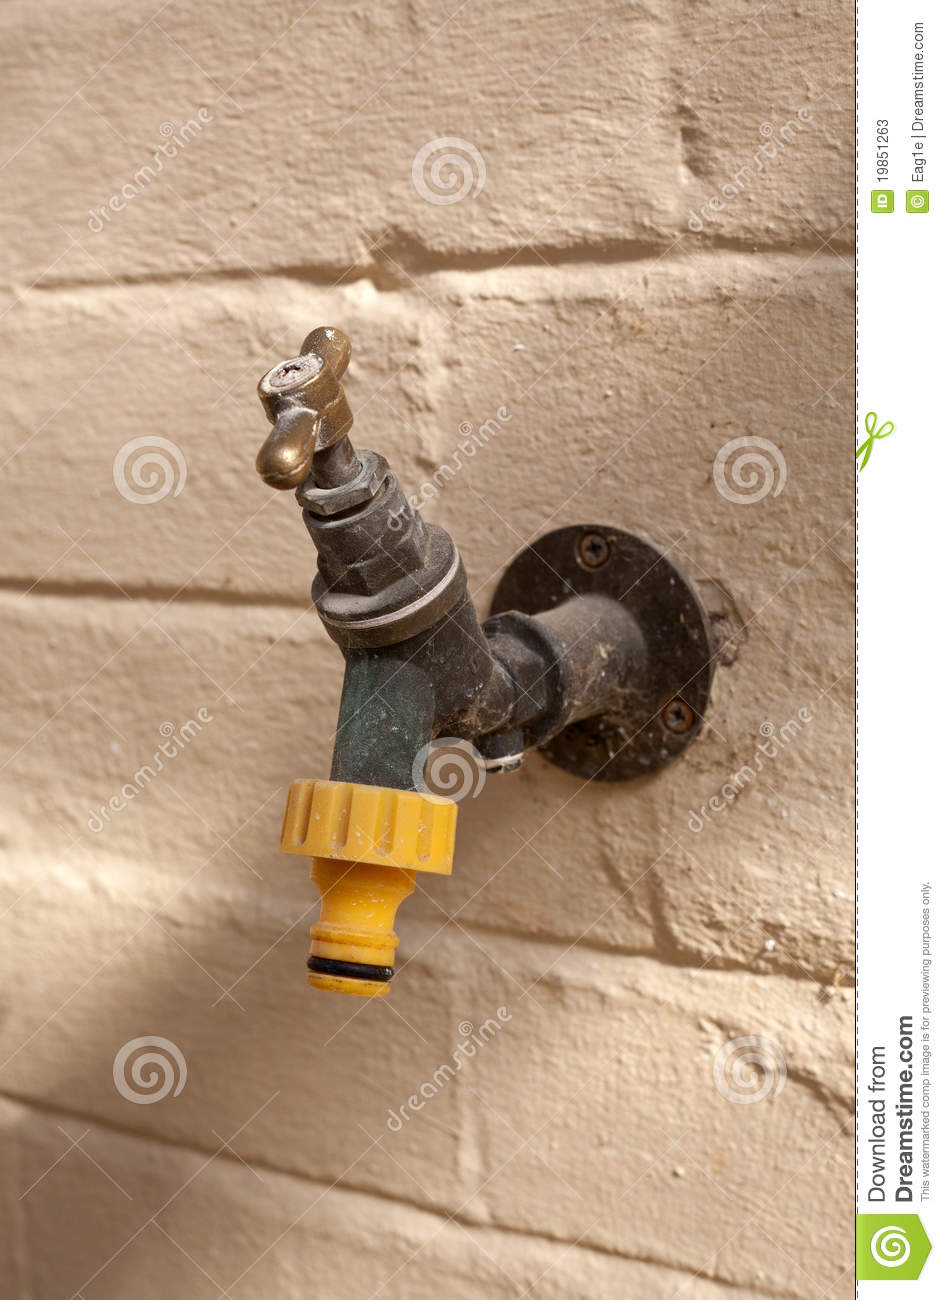 how to put a water tap outside